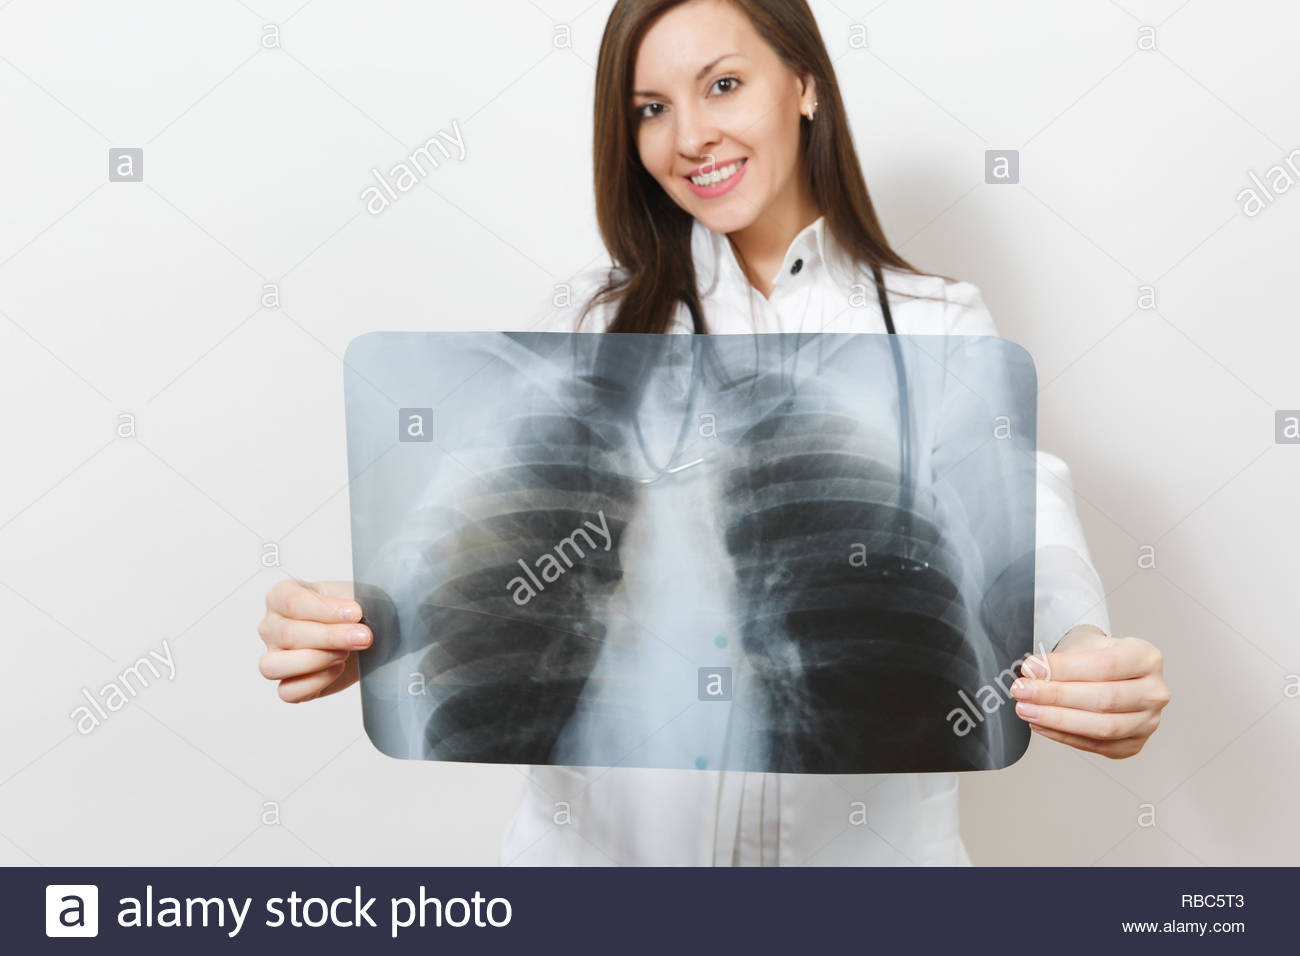 Close up cropped doctor woman with X-ray of lungs, fluorography, roentgen isolated on white background. Female doctor in medical gown stethoscope. Hea - Stock Image